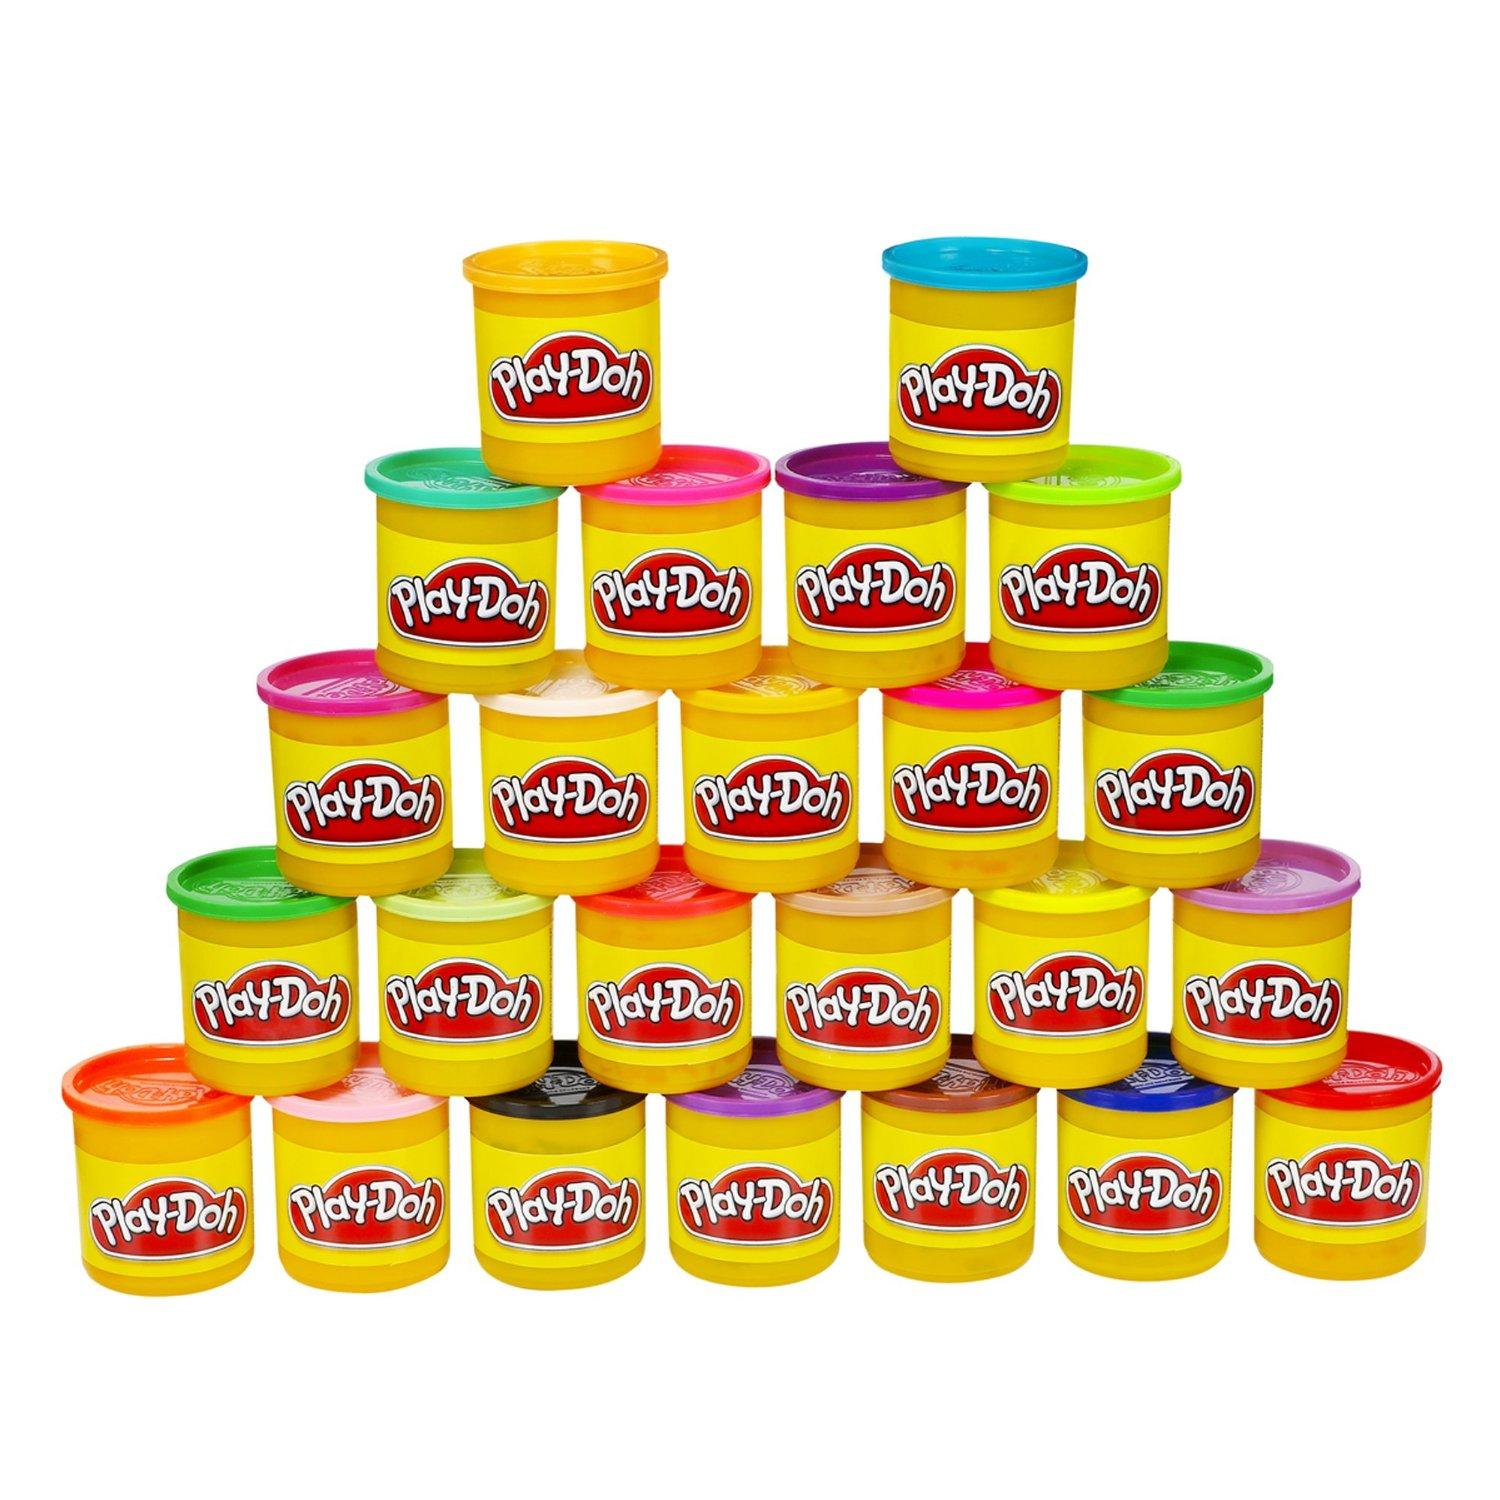 $9.79 Play-Doh 24-Pack of Colors